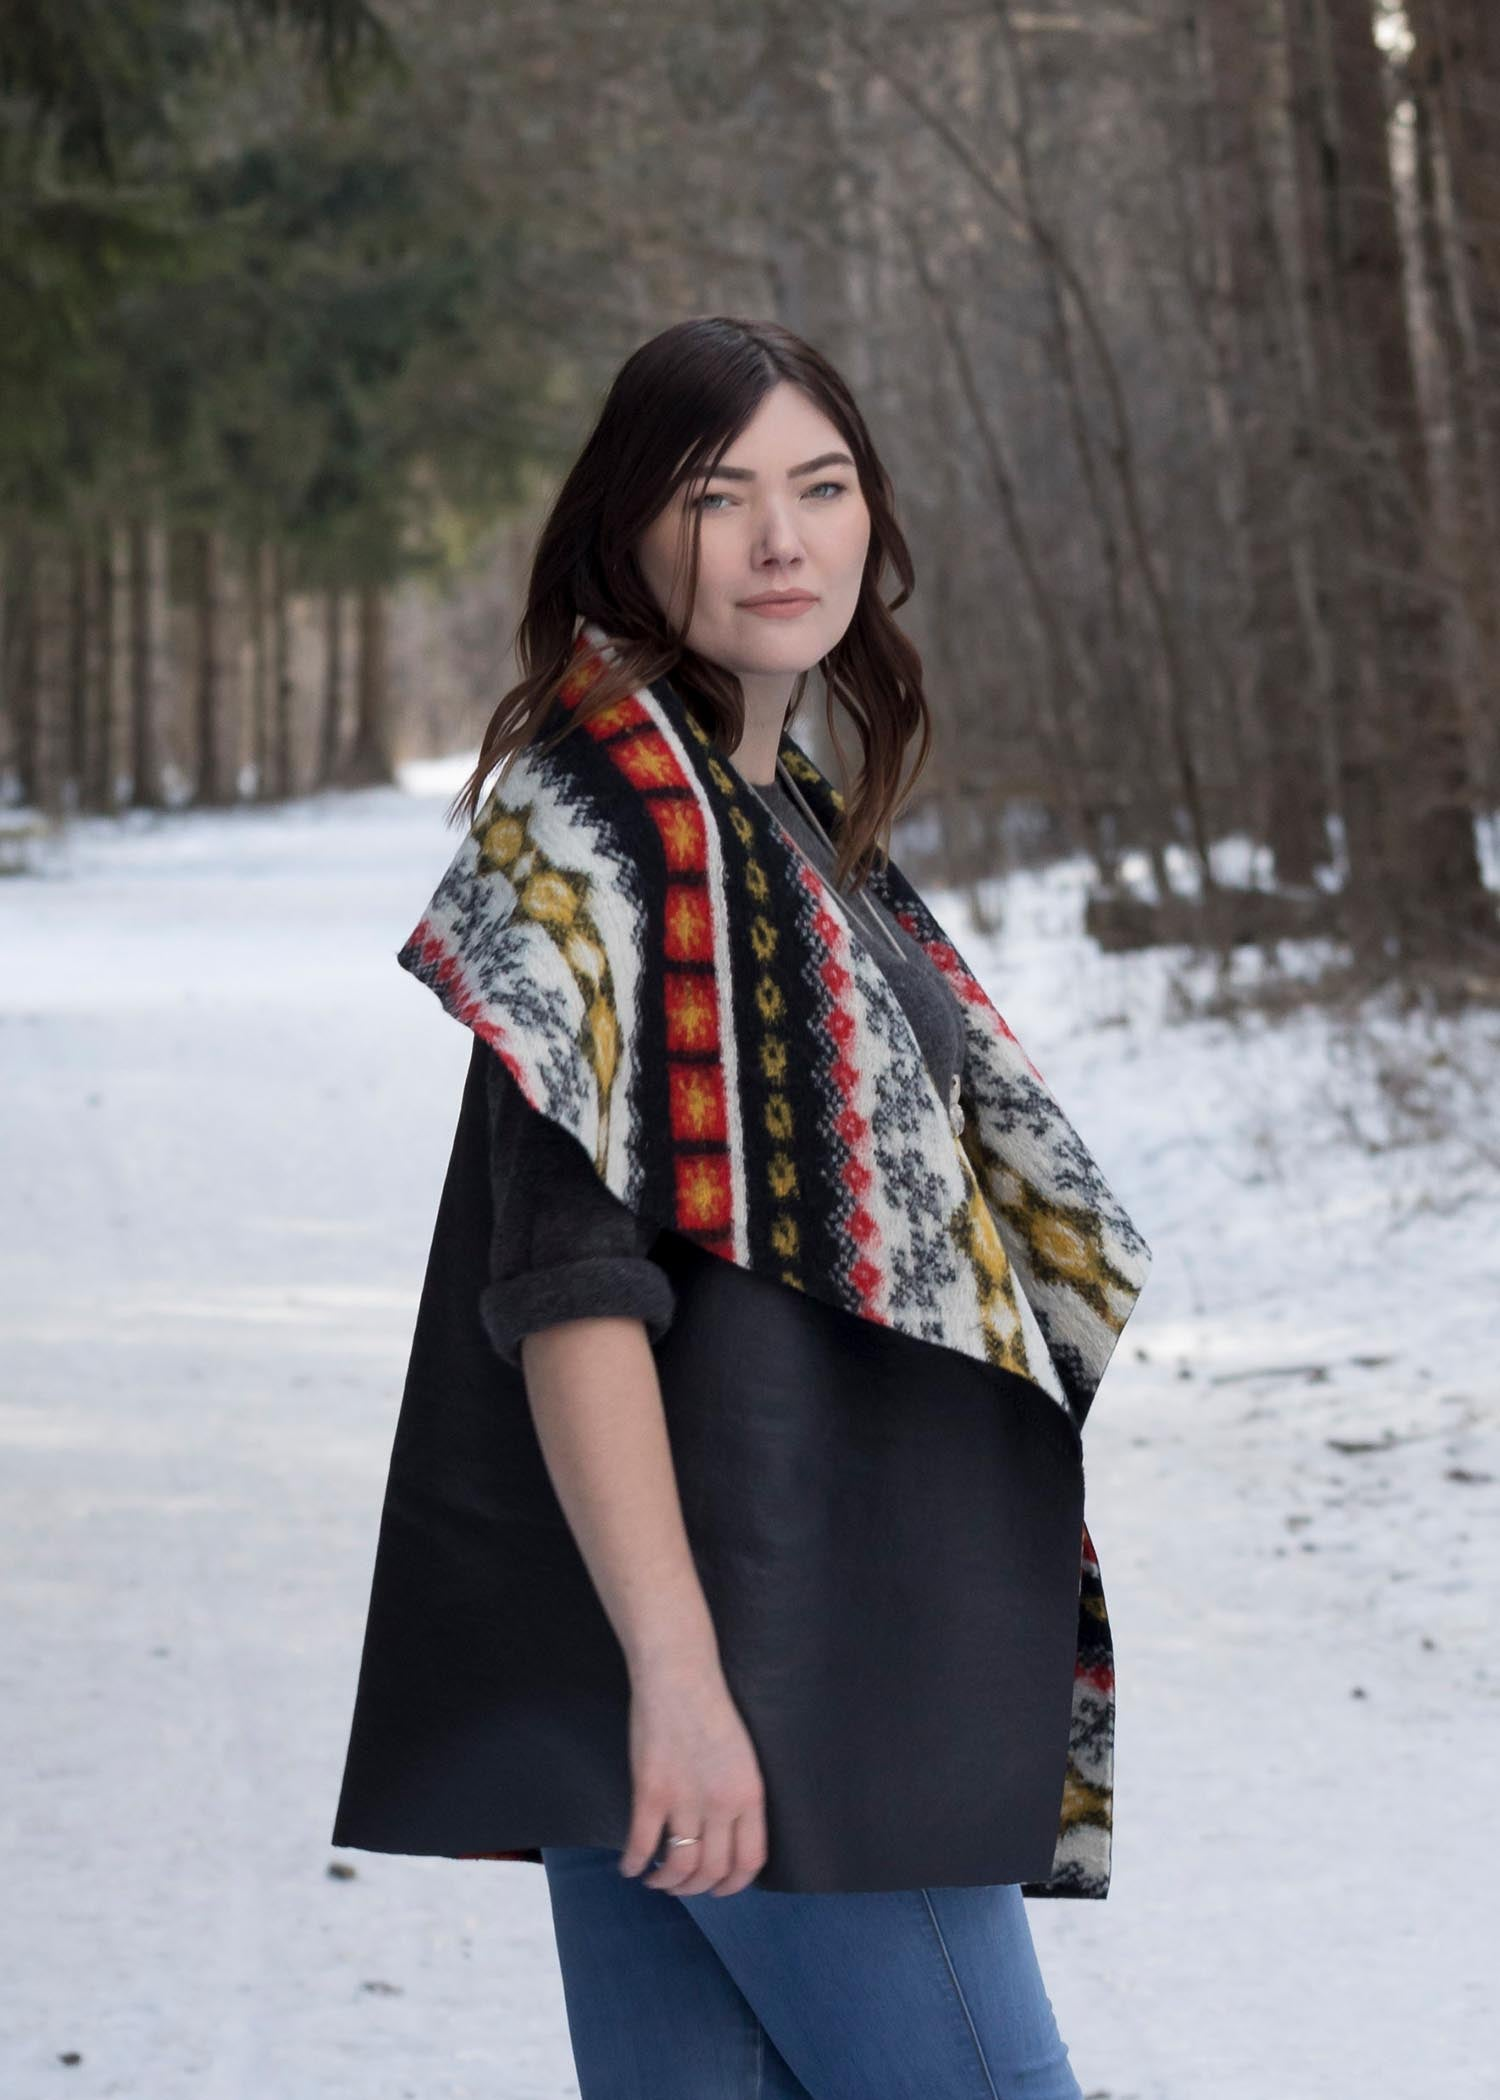 Reversible Blanket Vest - Long - Faux Leather & Boiled Wool Look - Red Yellow Black Red White